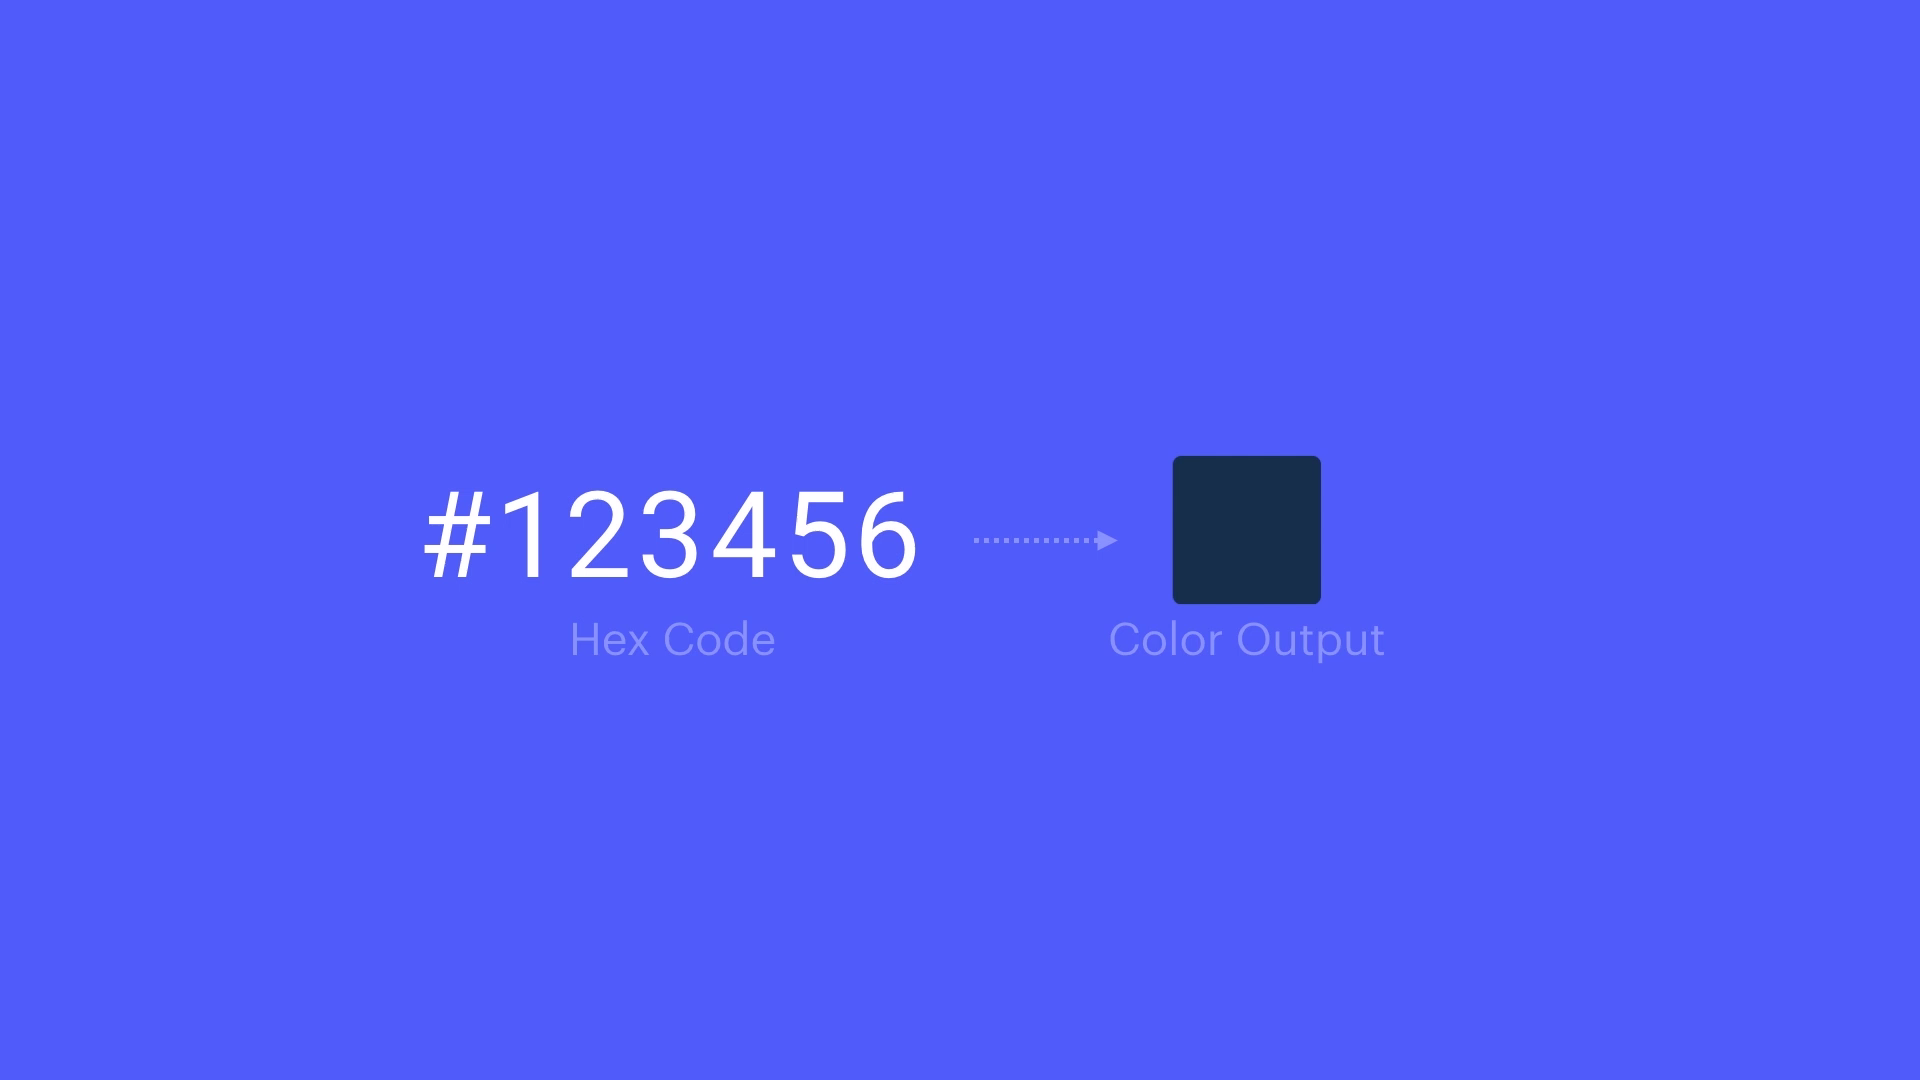 Hex colors